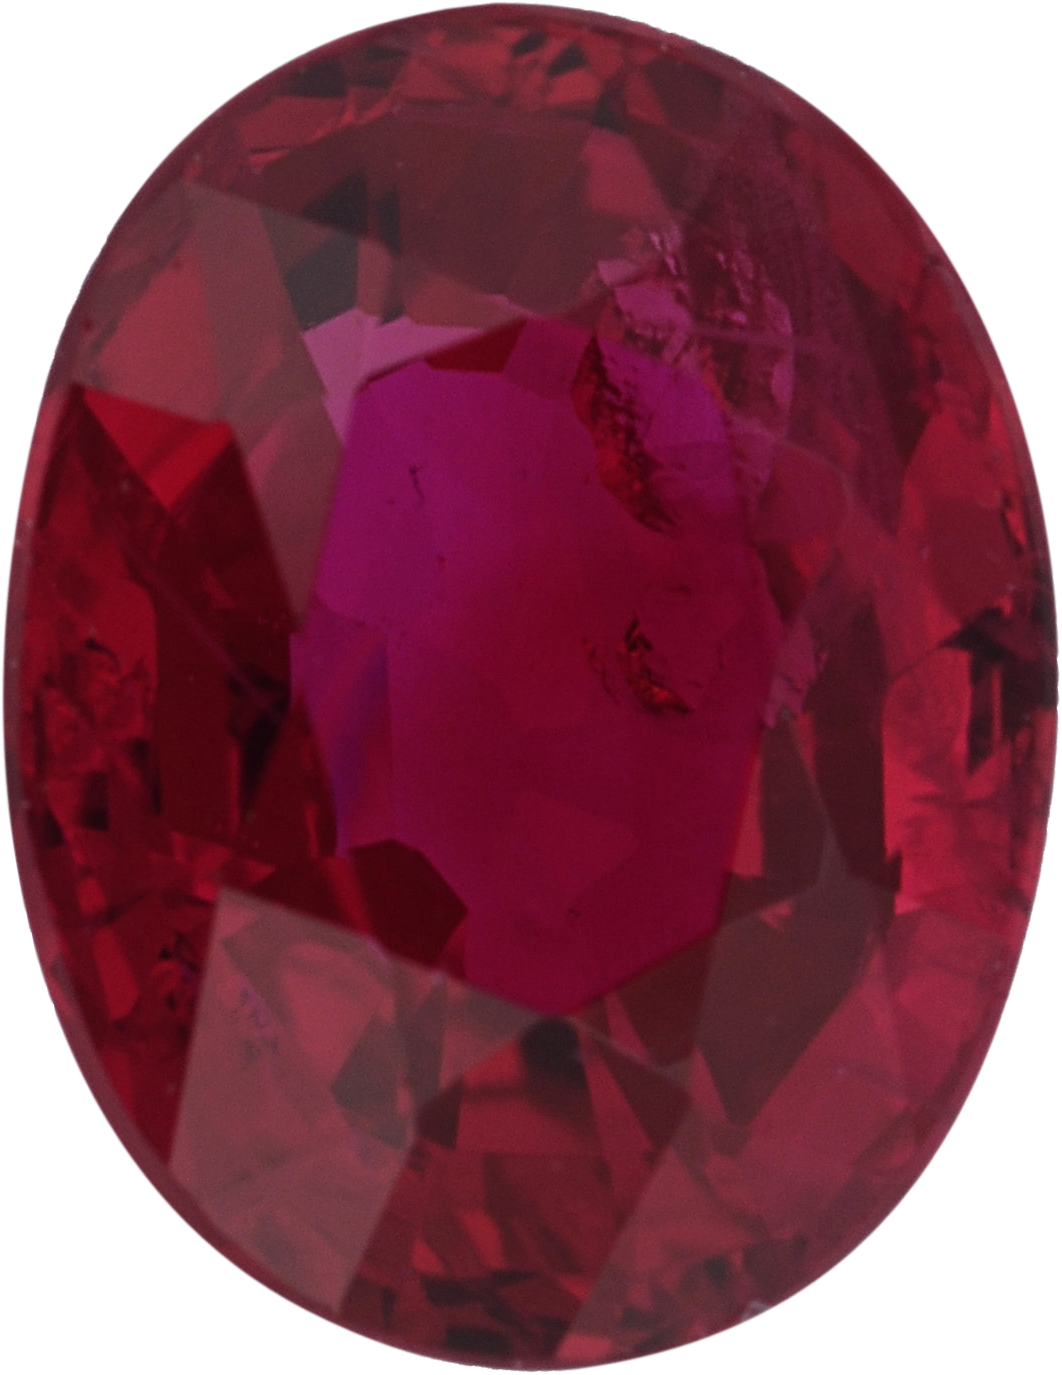 Fantastic Loose Ruby Gem in Oval Cut,  Red Color, 6.56 x 5.09 mm, 1.05 carats